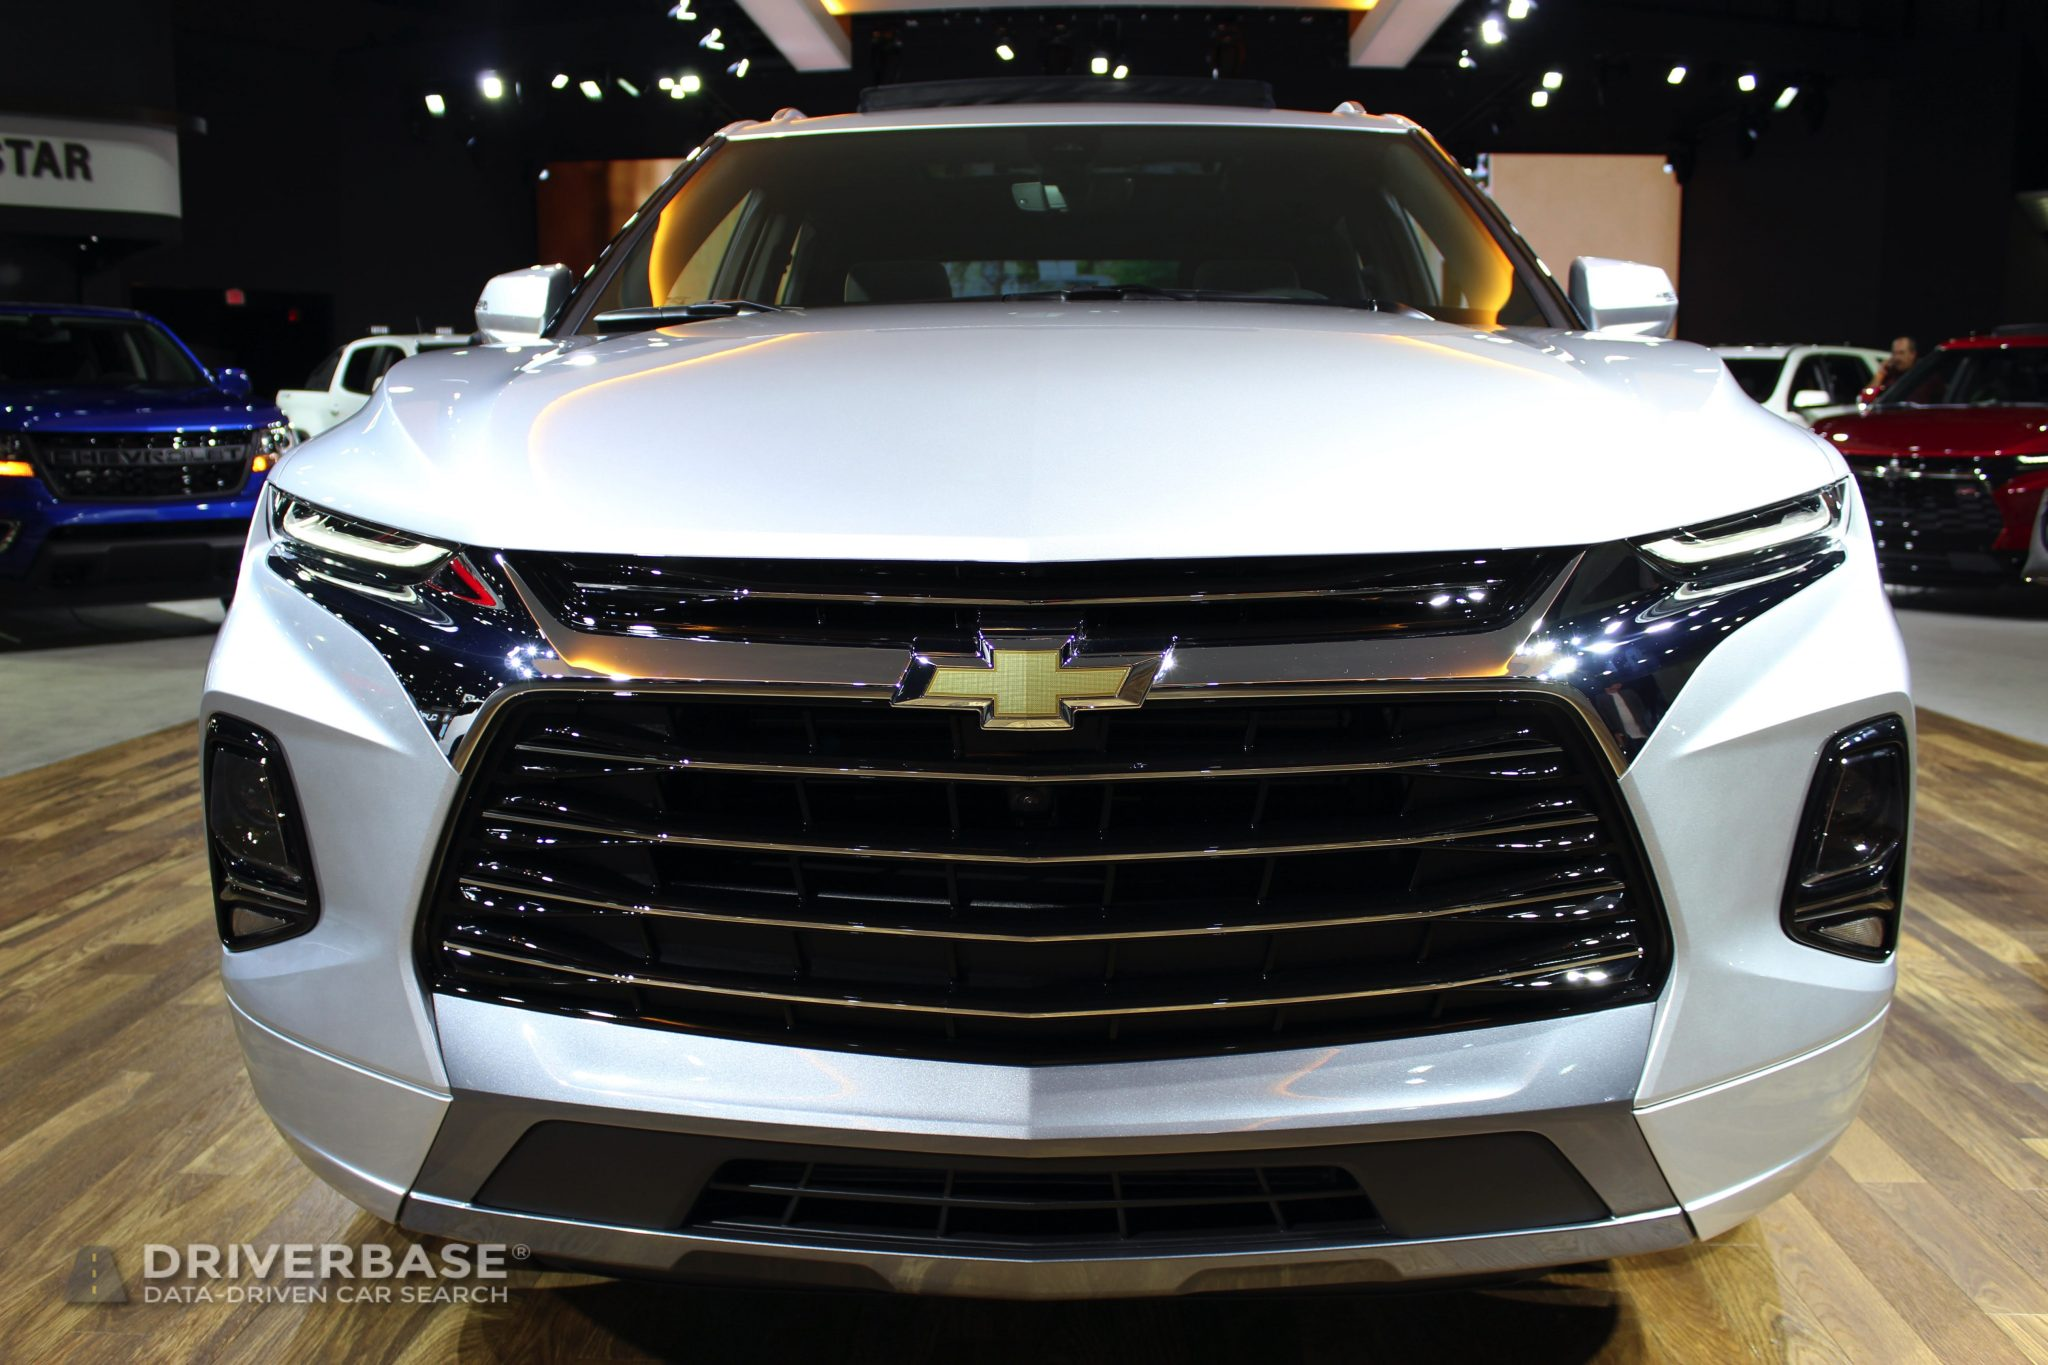 2020 Chevrolet Trailblazer Premier at the 2019 Los Angeles Auto Show